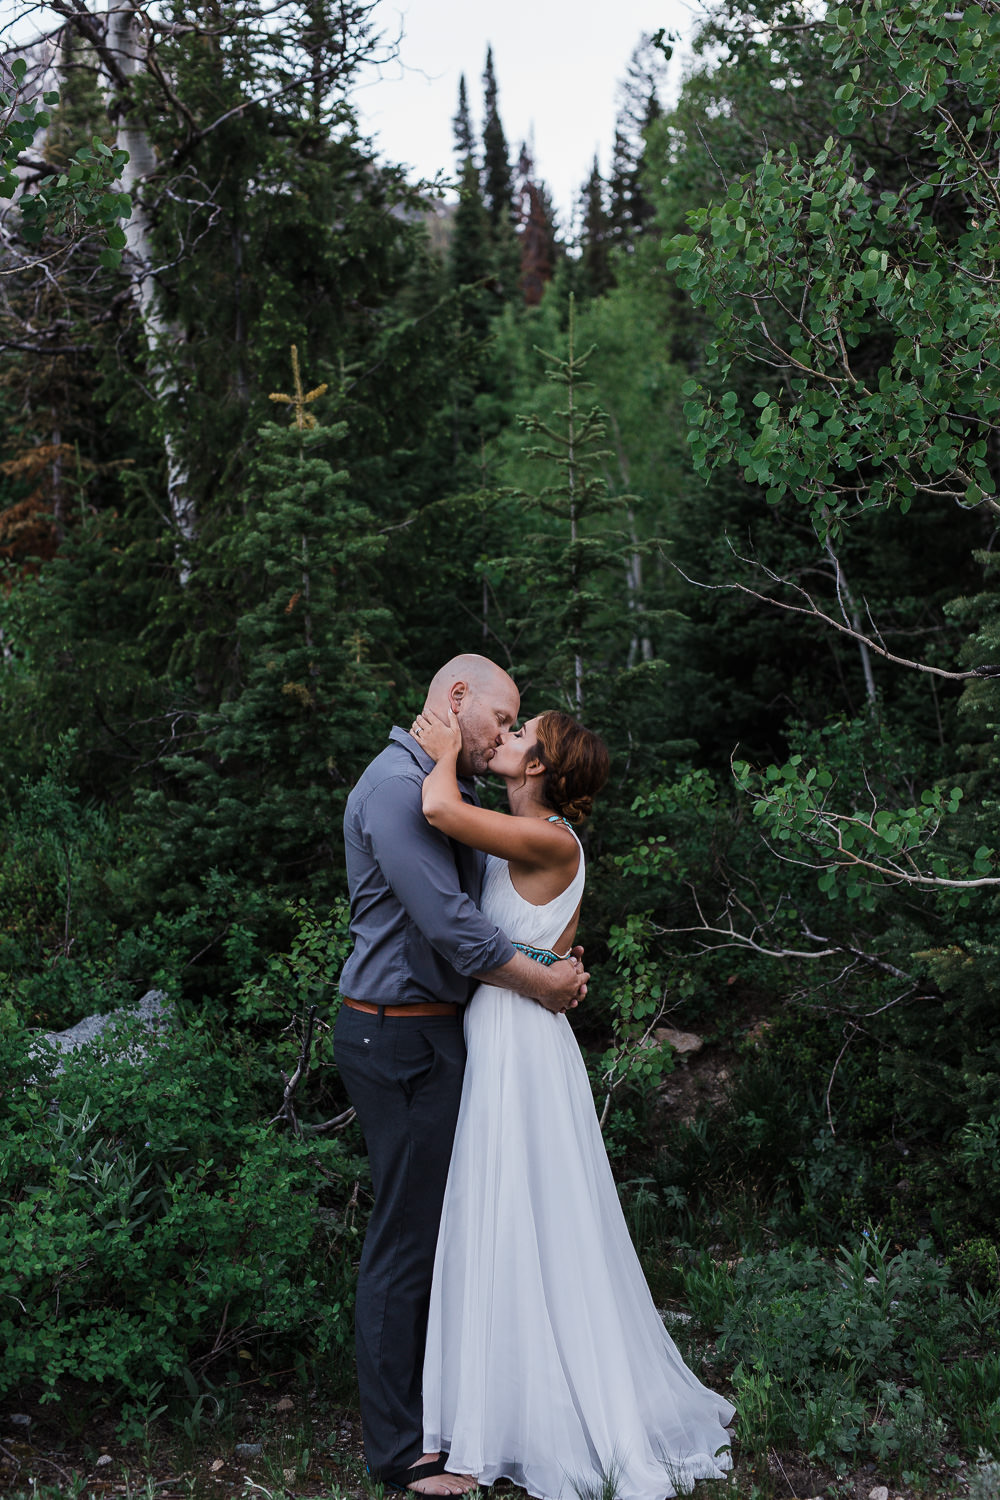 Vow renewal photography by adventurous photographers Kyle and Tori Sheppard